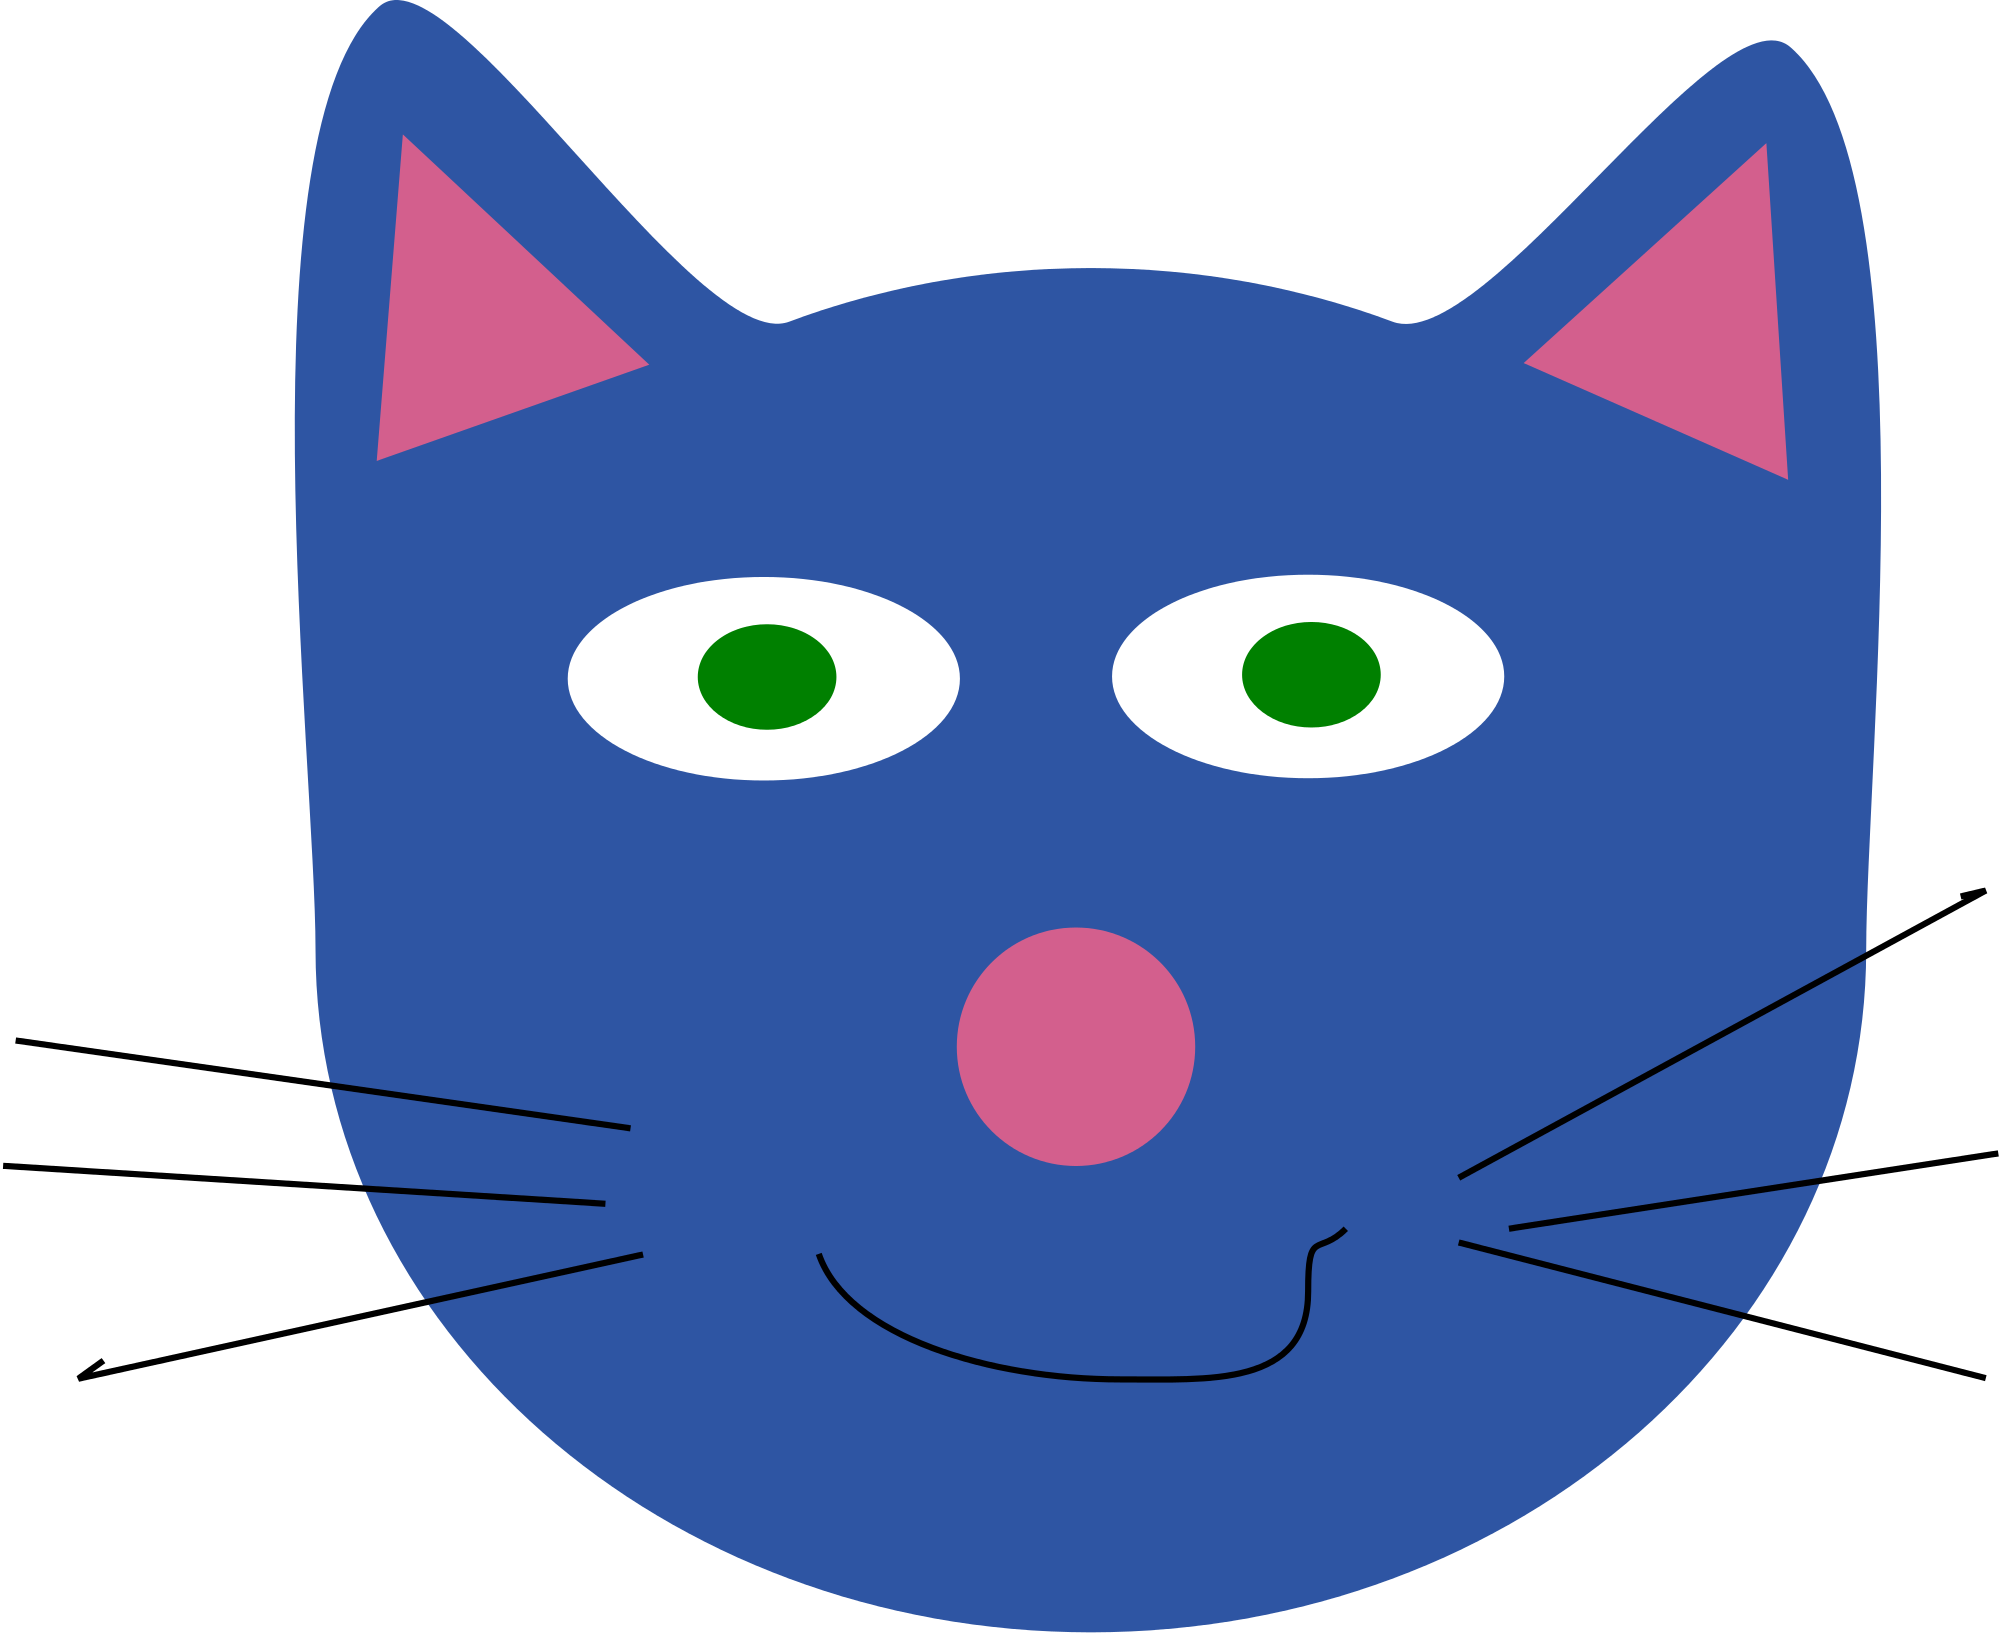 Cat clipart head png black and white library File:Cat drawing.svg - Wikimedia Commons png black and white library